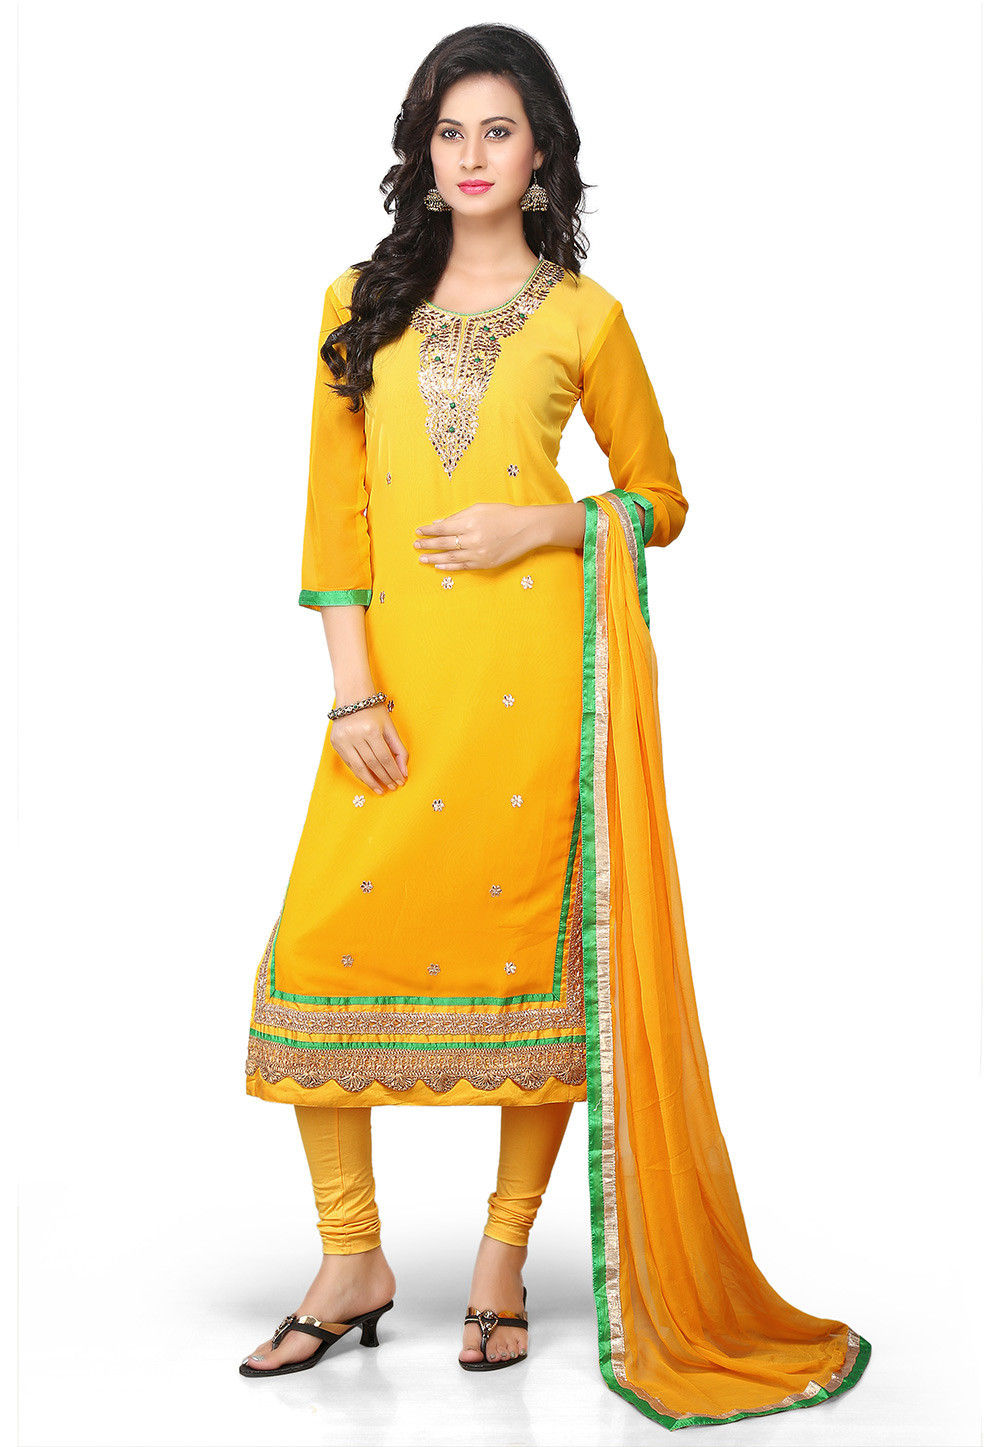 Gota Patti Embroidered Straight Cut Suit in Shaded Yellow